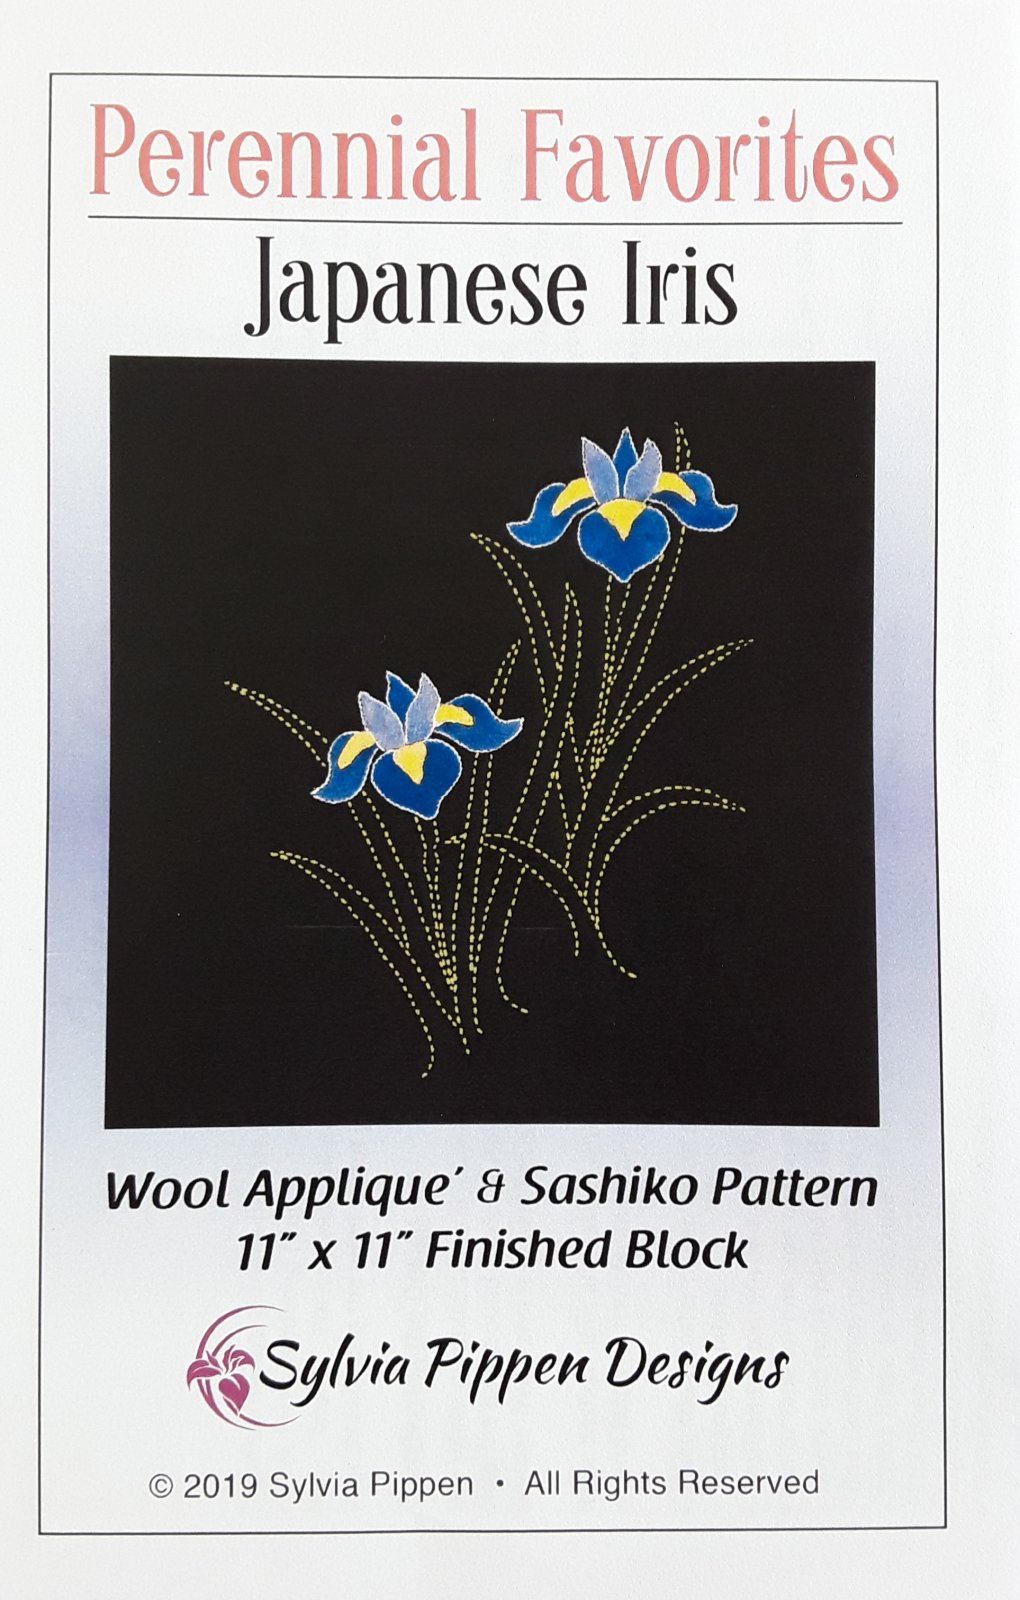 Perennial Favorites Japanese Iris Wool Applique & Sashiko Pattern